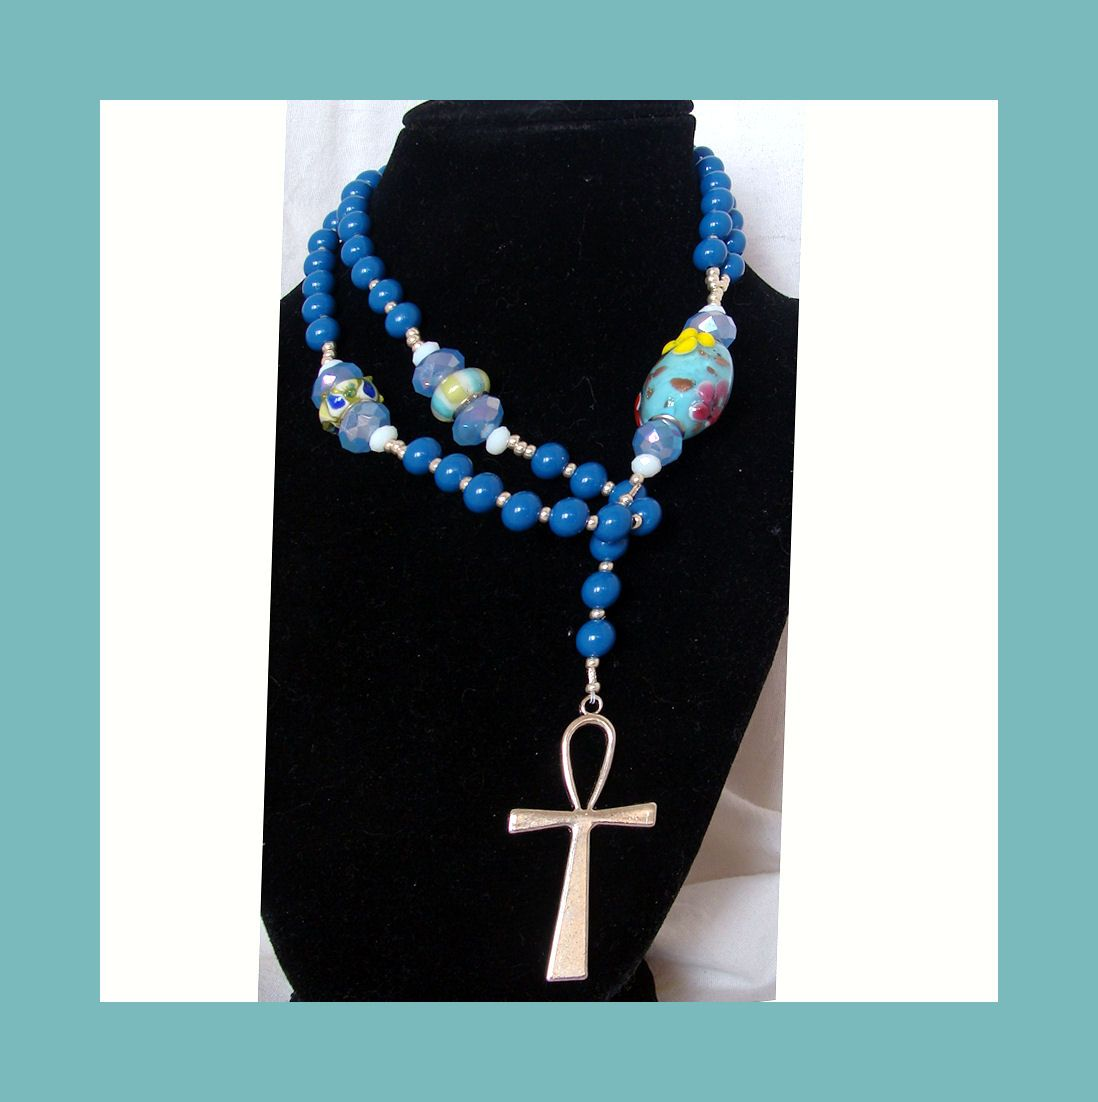 """This sweet """"Rosary Style"""" necklace has 5 decades, delineated by pastel Pandora-style beads and ending with a large Easter Egg looking Pandora style bead. Pendant is a 2"""" silver ankh, Blue beads are enameled plastic. These are one of the few types of plastic beads I will use. I just think the enameling is just so neat. Necklace is 25 inches in length, with an additional 6 inches for the pendant part. $28 Free Shipping.  Earrings and/or bracelet available for additional cost."""